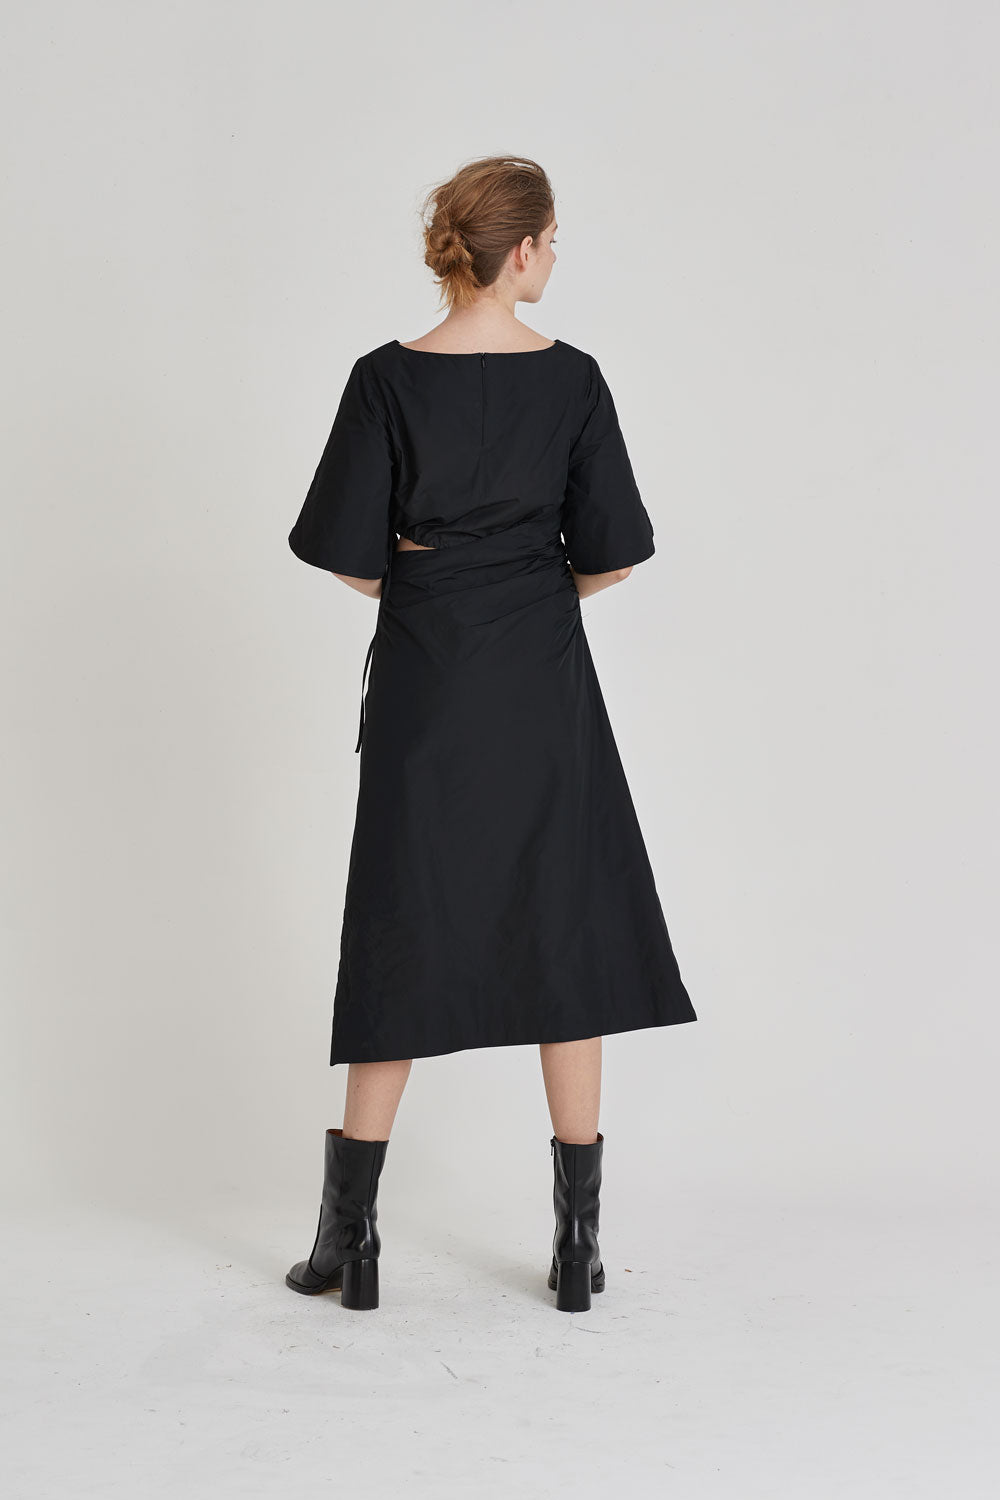 Memory Dress Black - Wynn Hamlyn — Shop